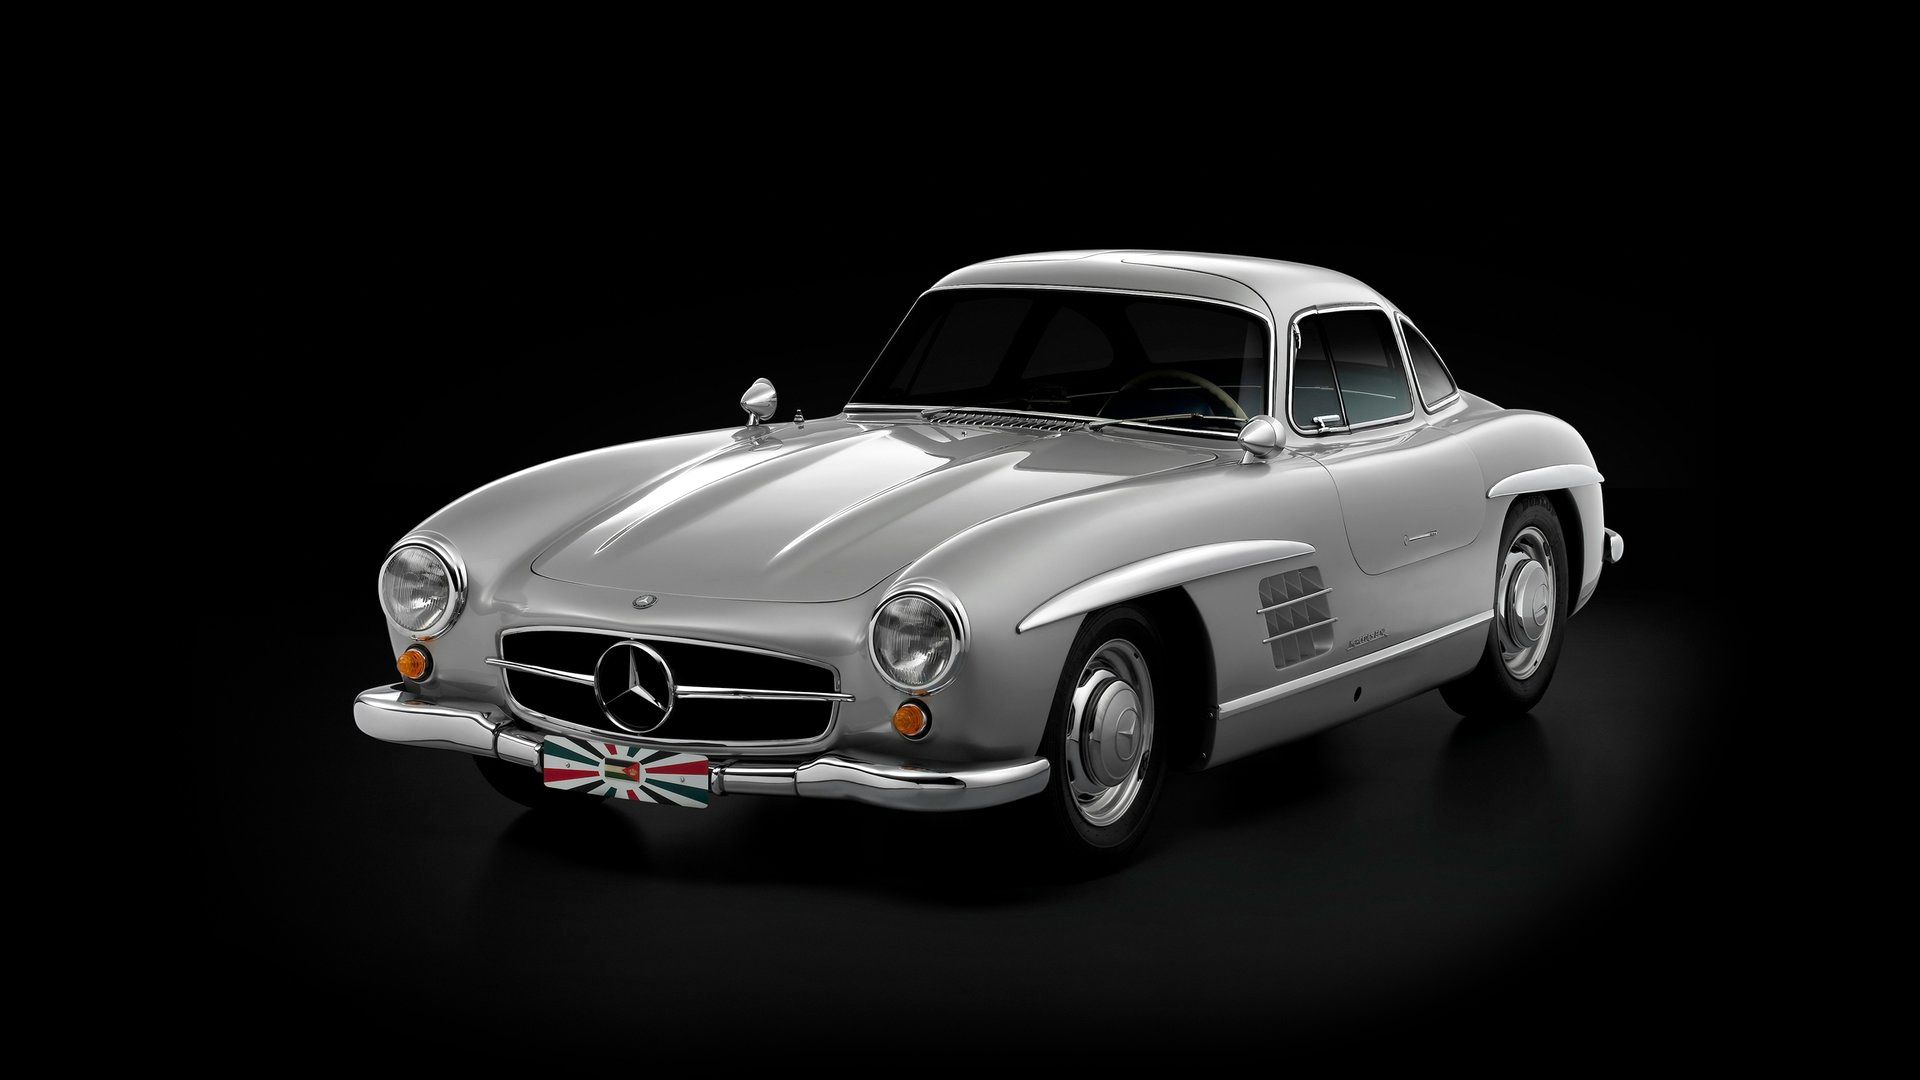 mercedes benz 300 sl wallpapers hd. Black Bedroom Furniture Sets. Home Design Ideas